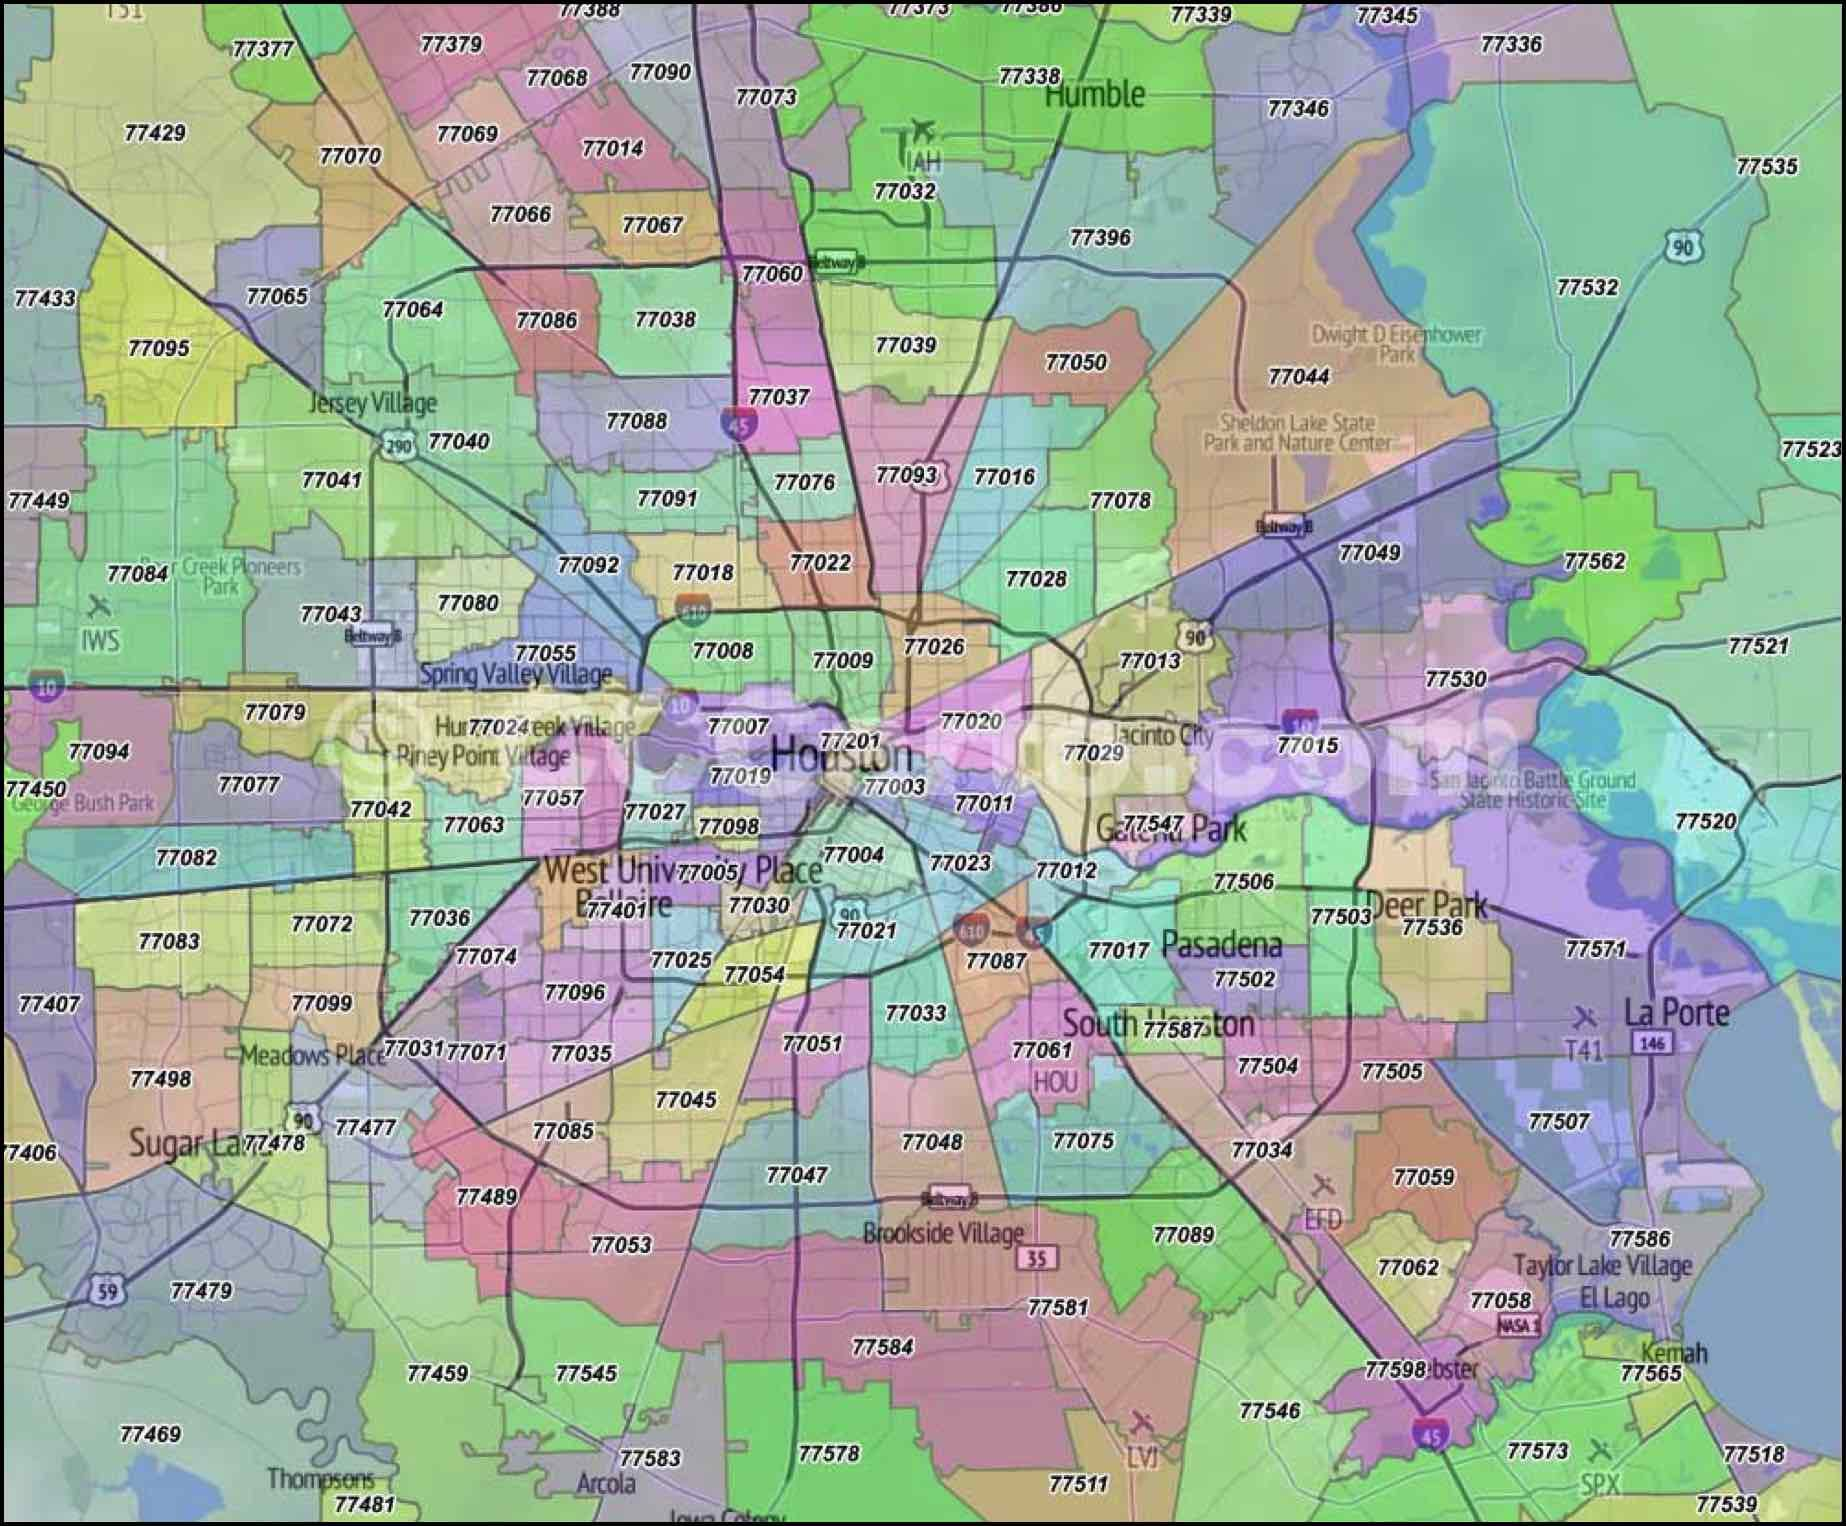 Zip Code Map Near Me Houston Zip Code Map | Houston zip code map, Zip code map, Houston map